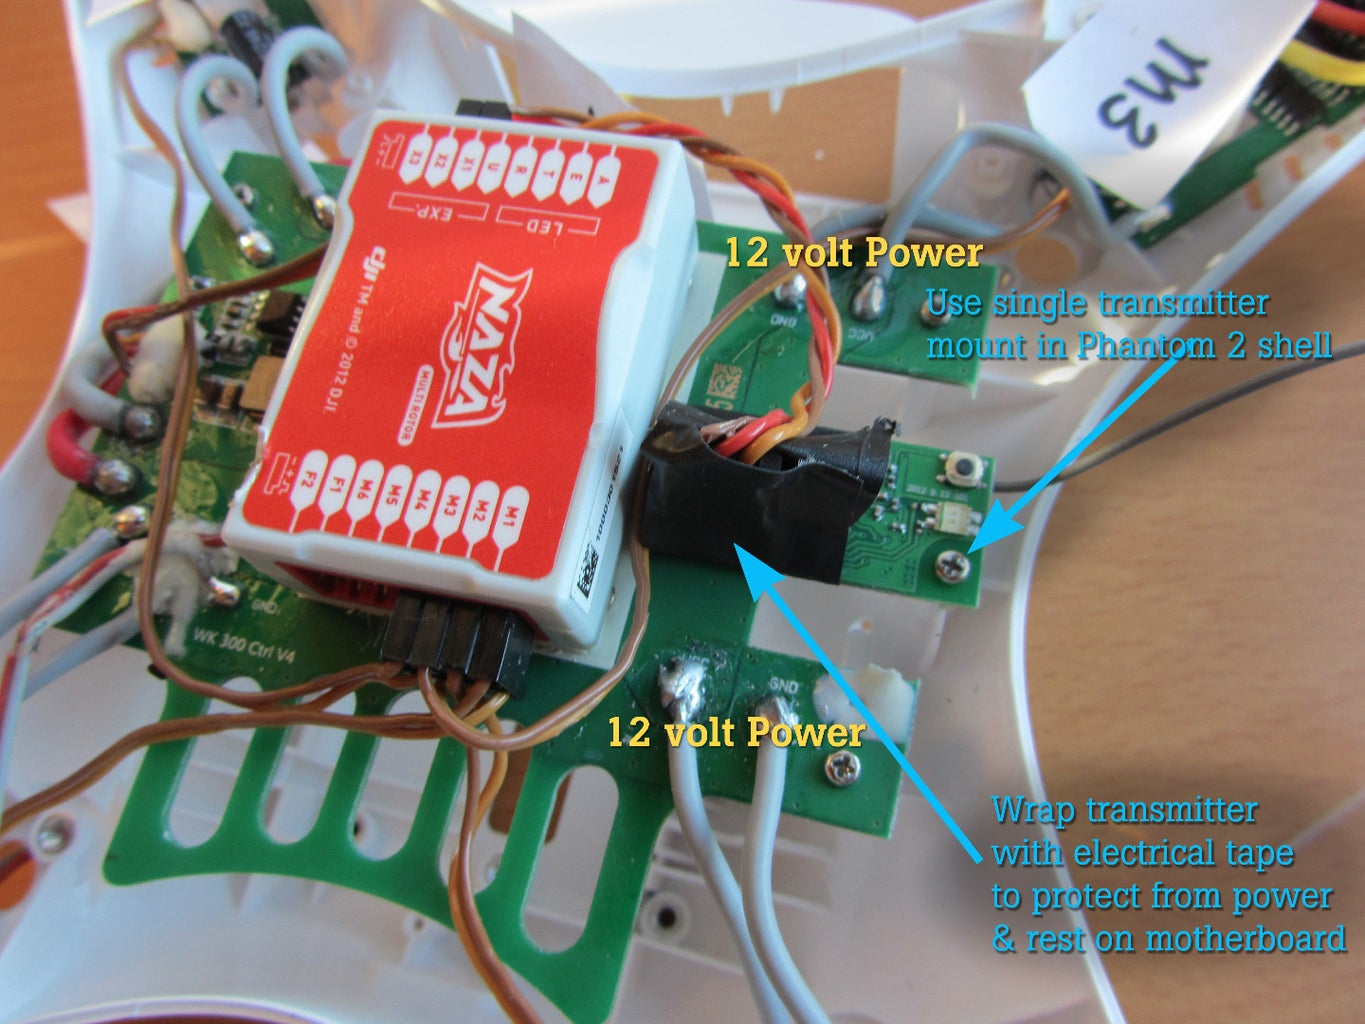 Attaching the Antenna – IMPORTANT